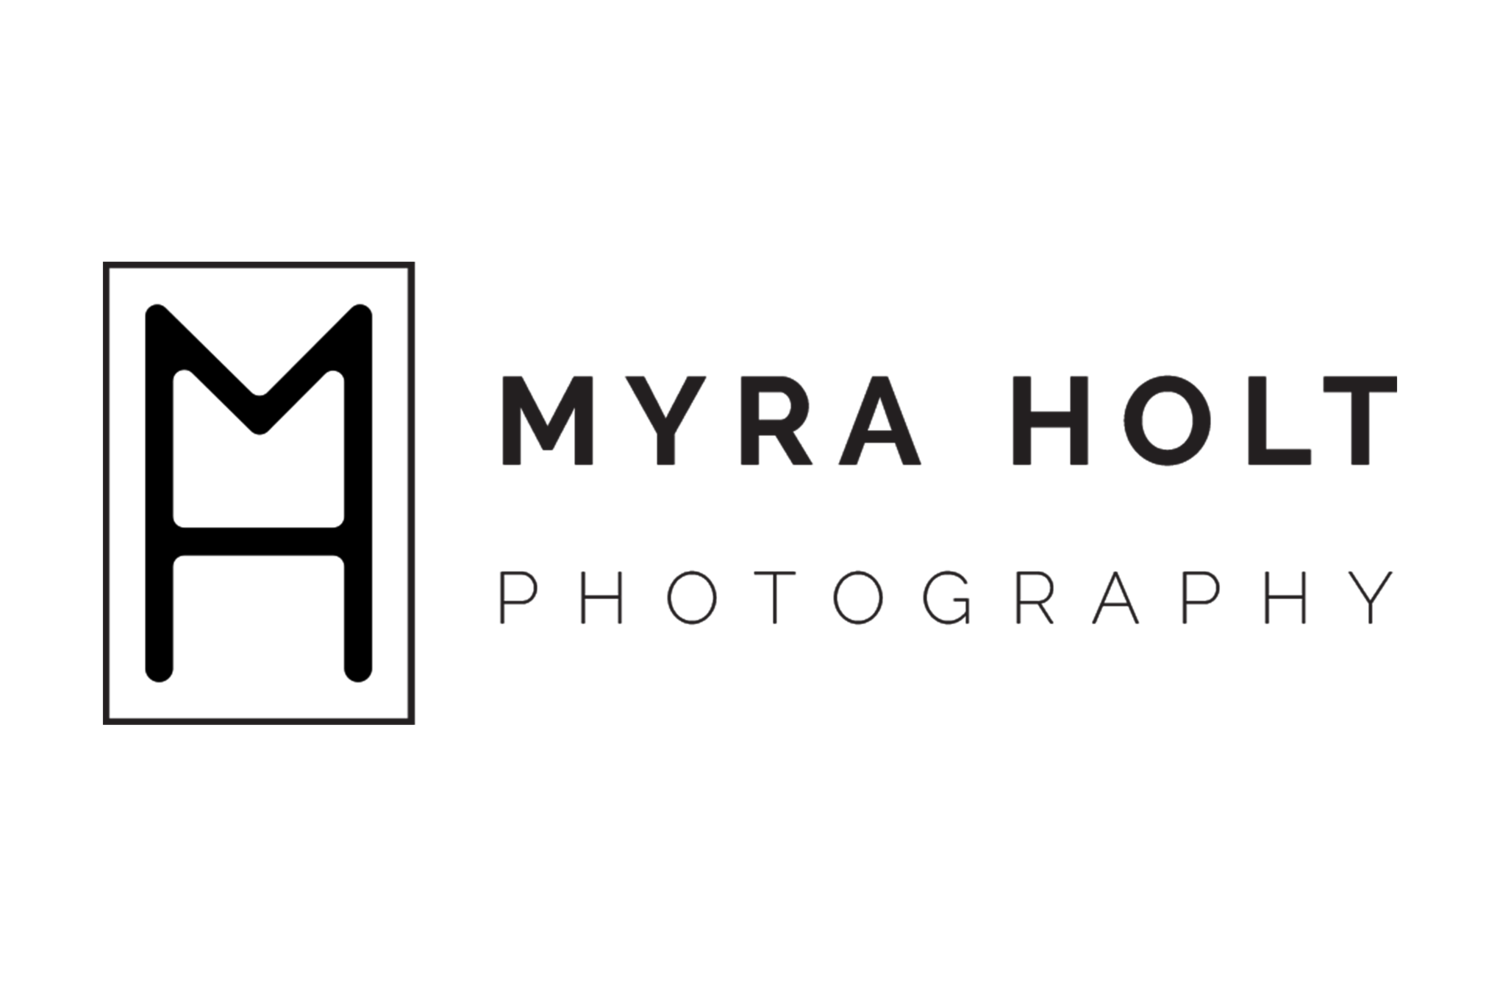 Myra Holt Photography